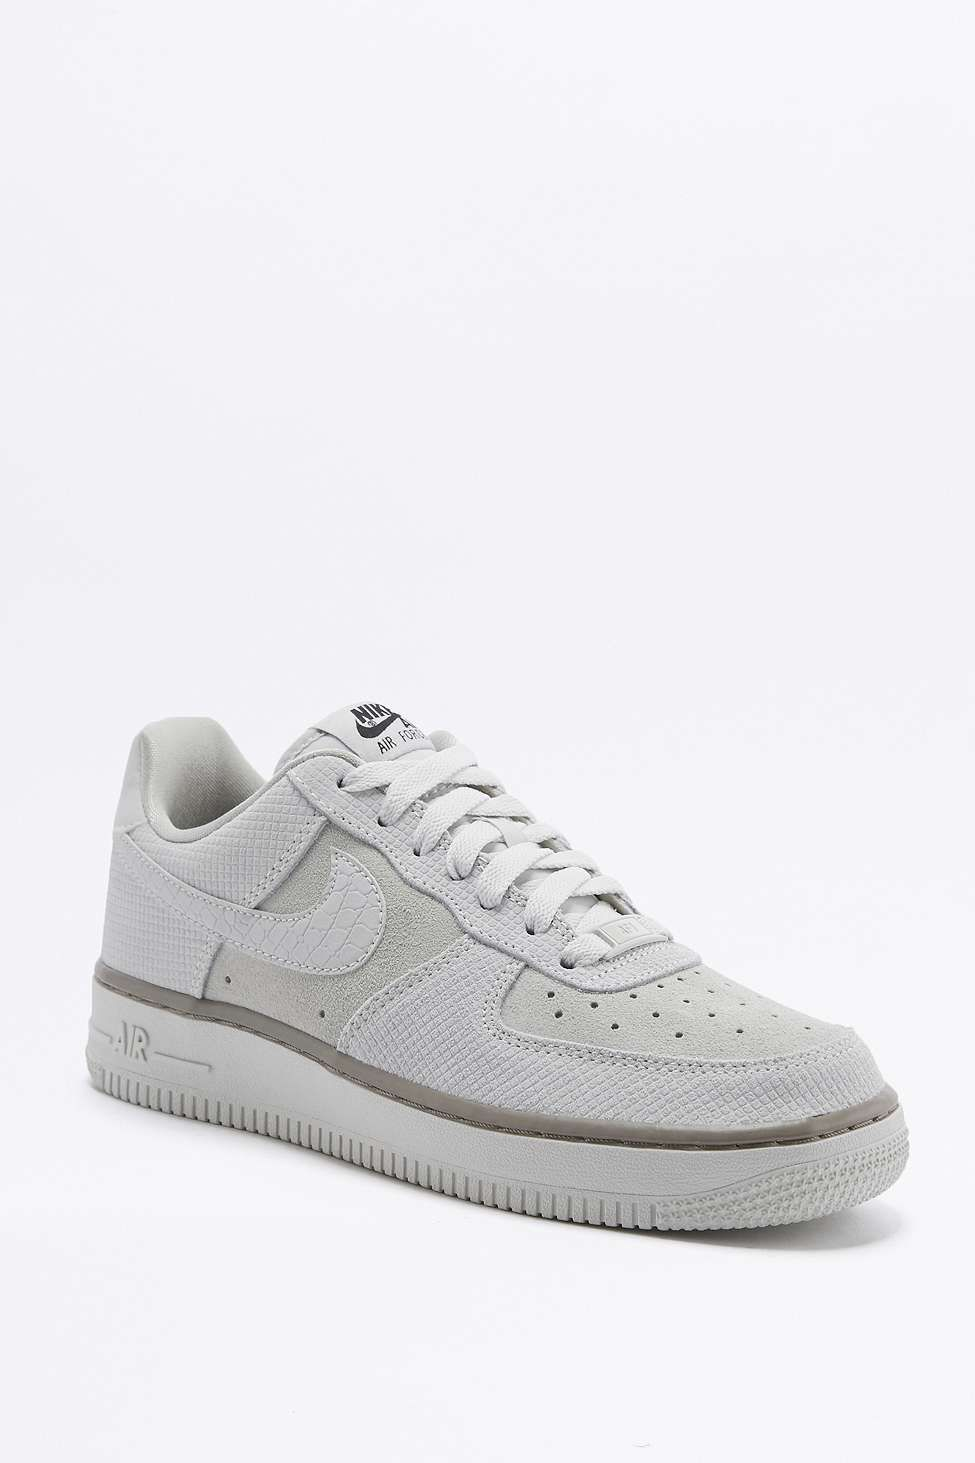 Nike Air Force 1 Ultra Force Off White Suede Trainers